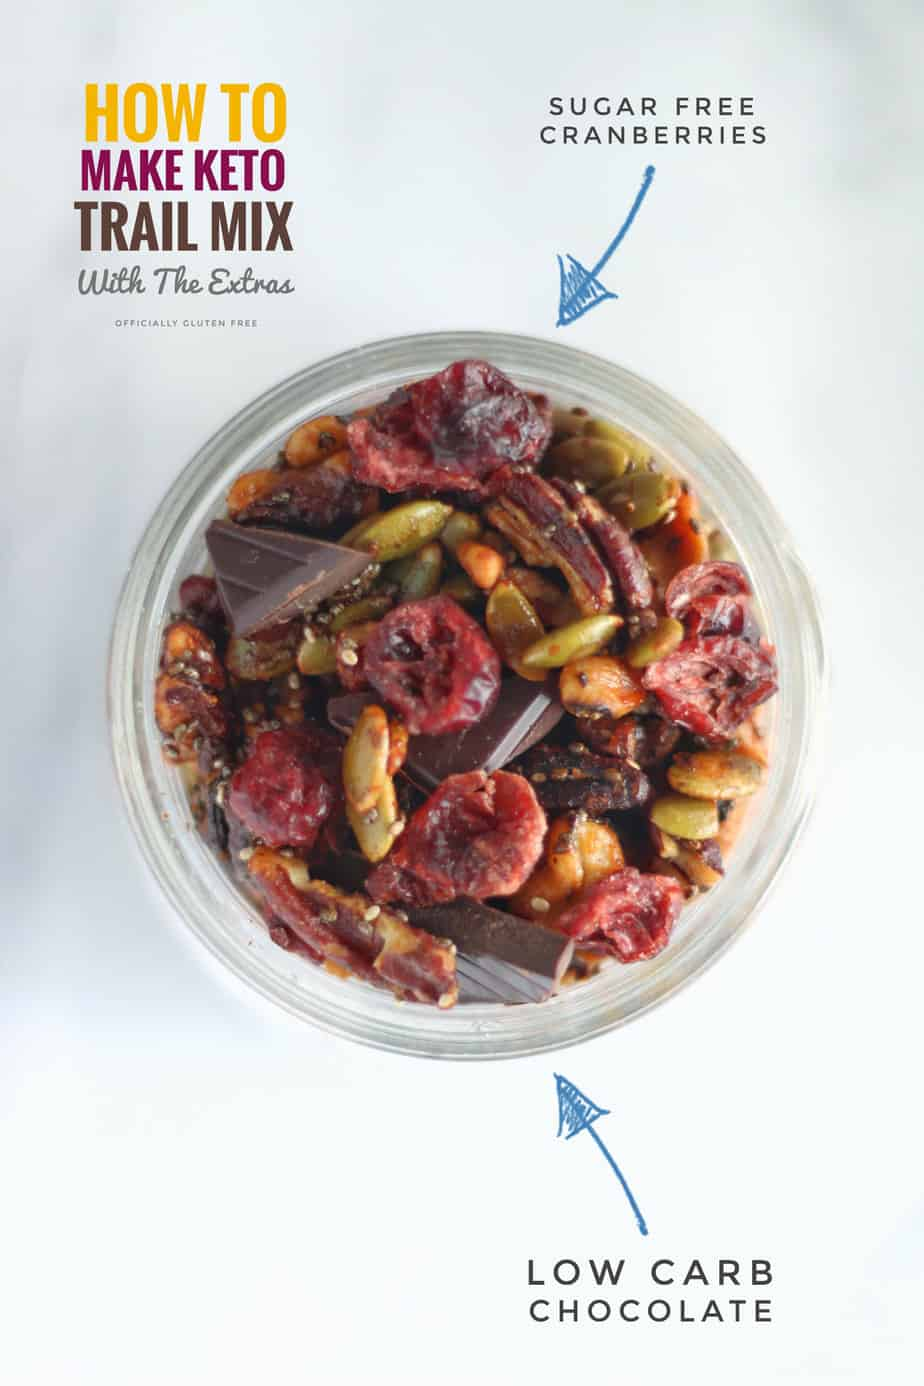 How To Make Keto Trail Mix